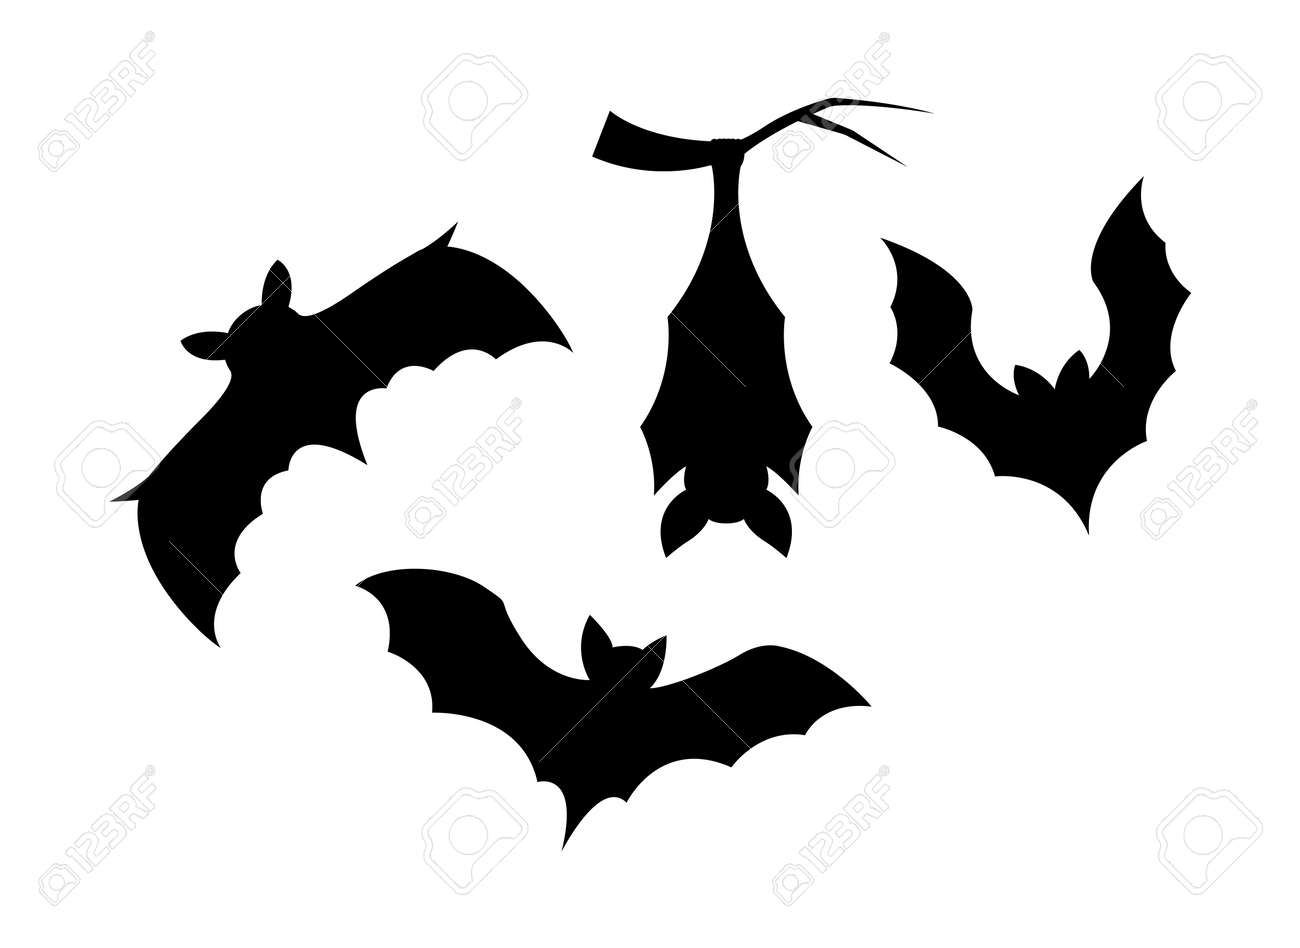 Silhouette elements of bats on white background - 169496393